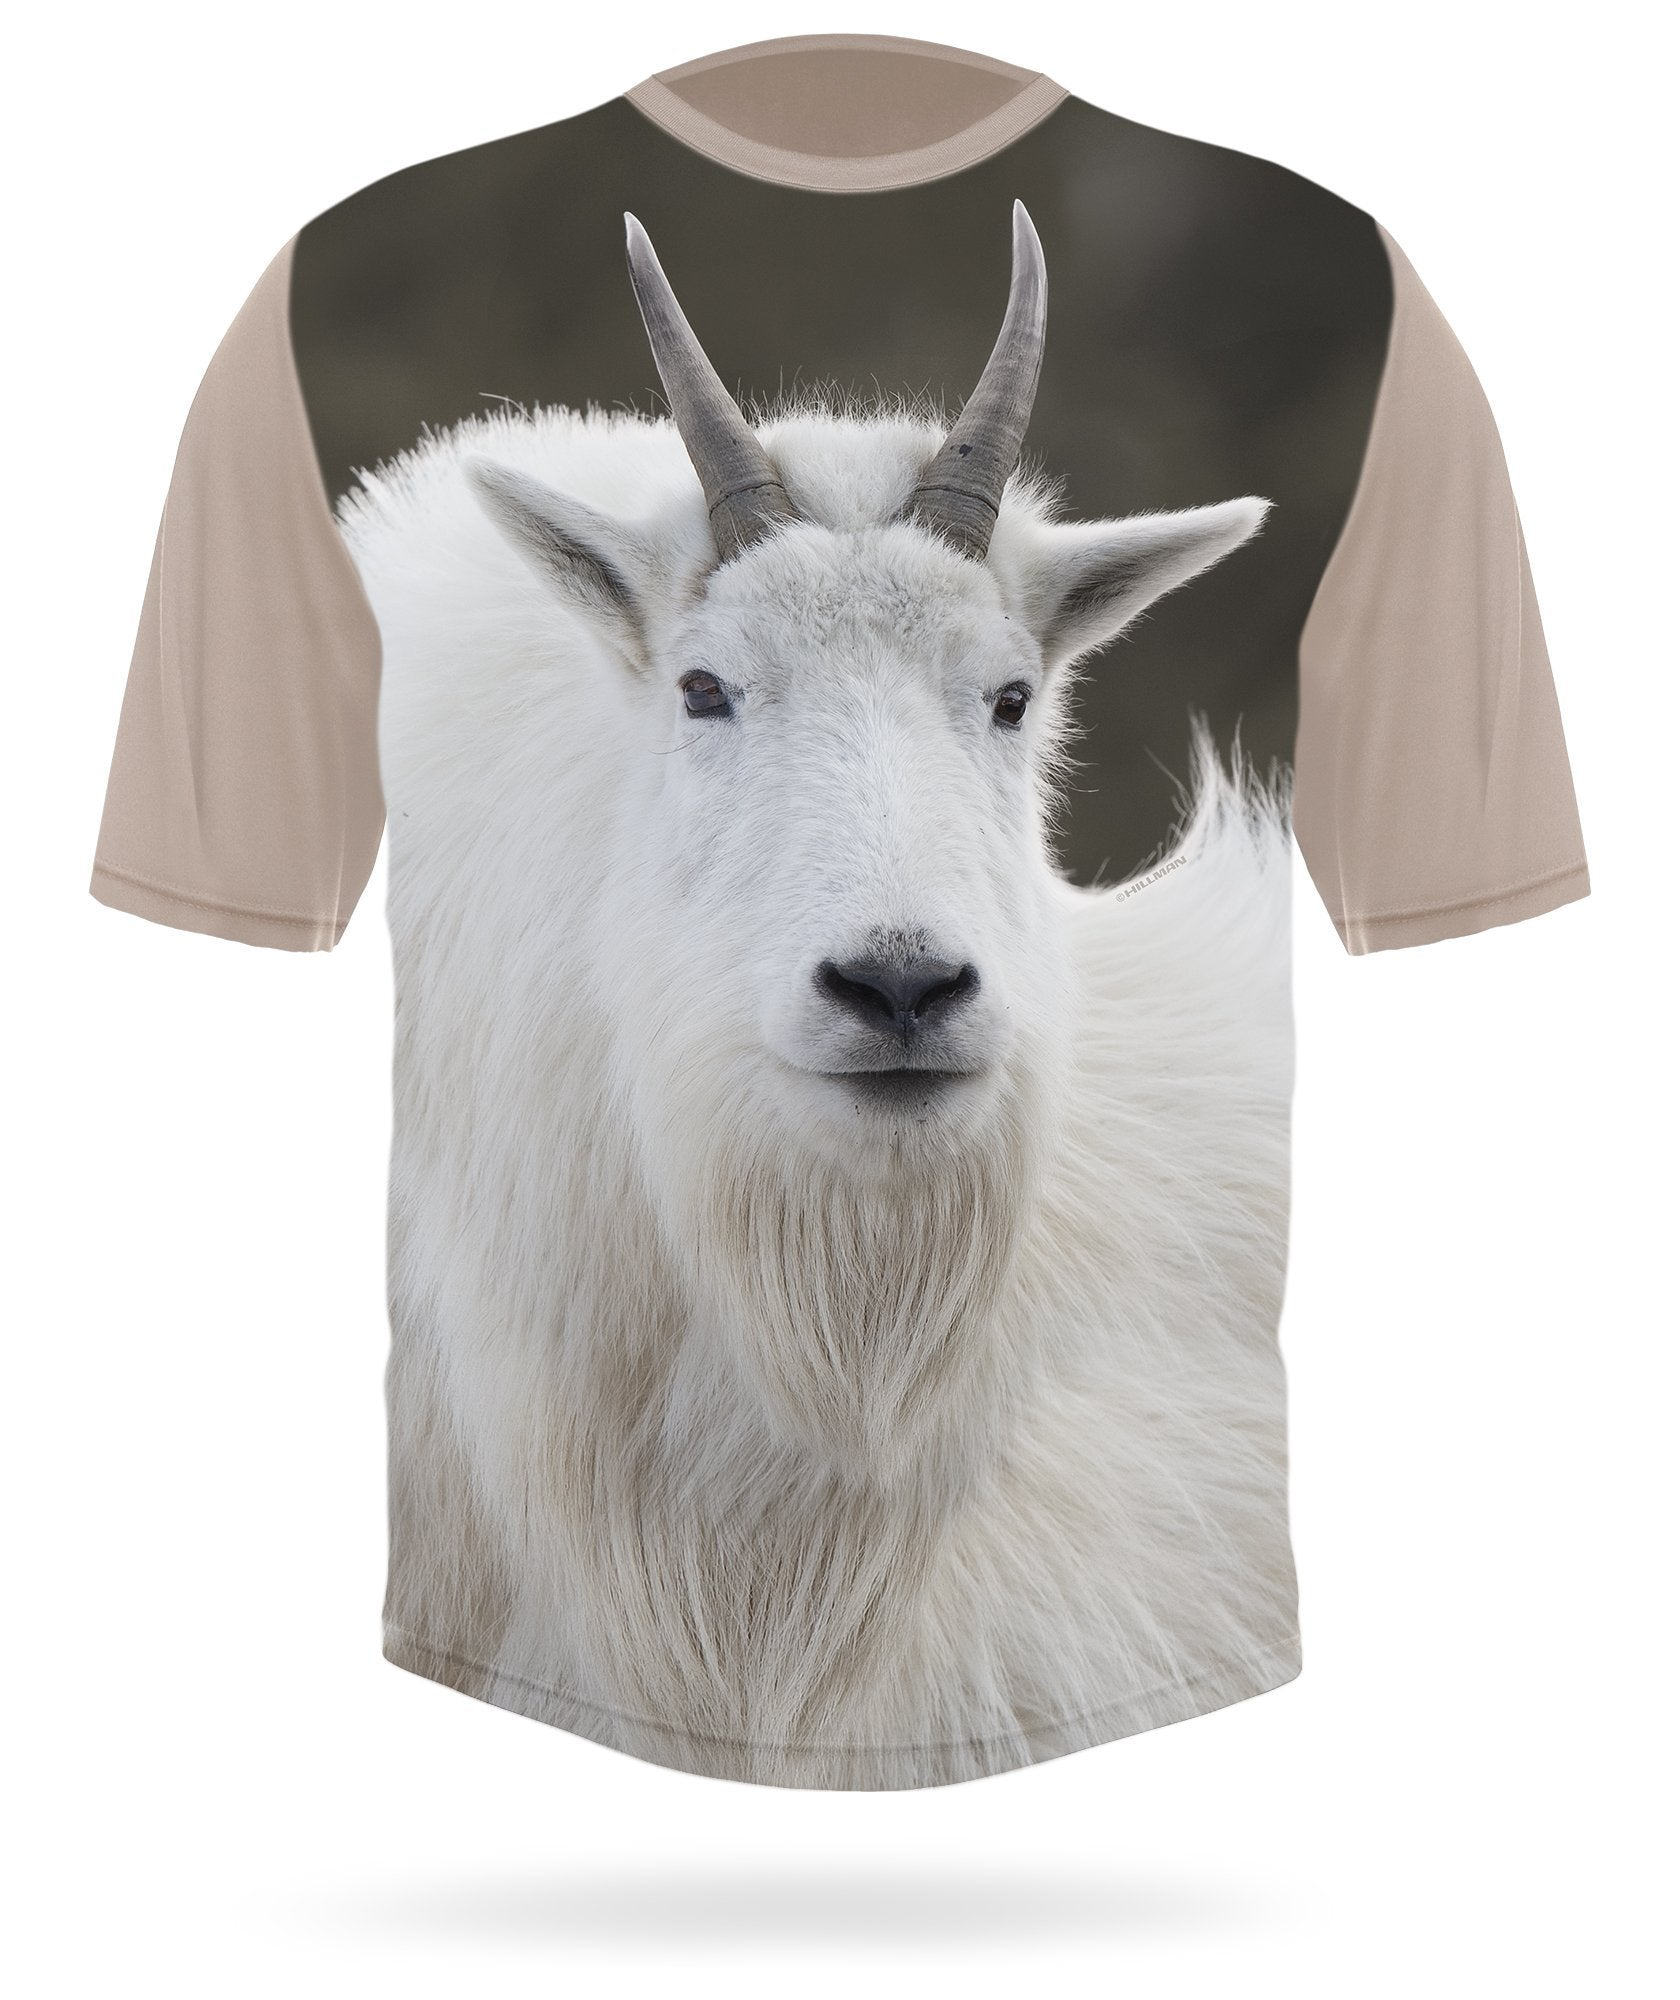 Mountain Goat shirt short sleeve - HILLMAN® hunting gear